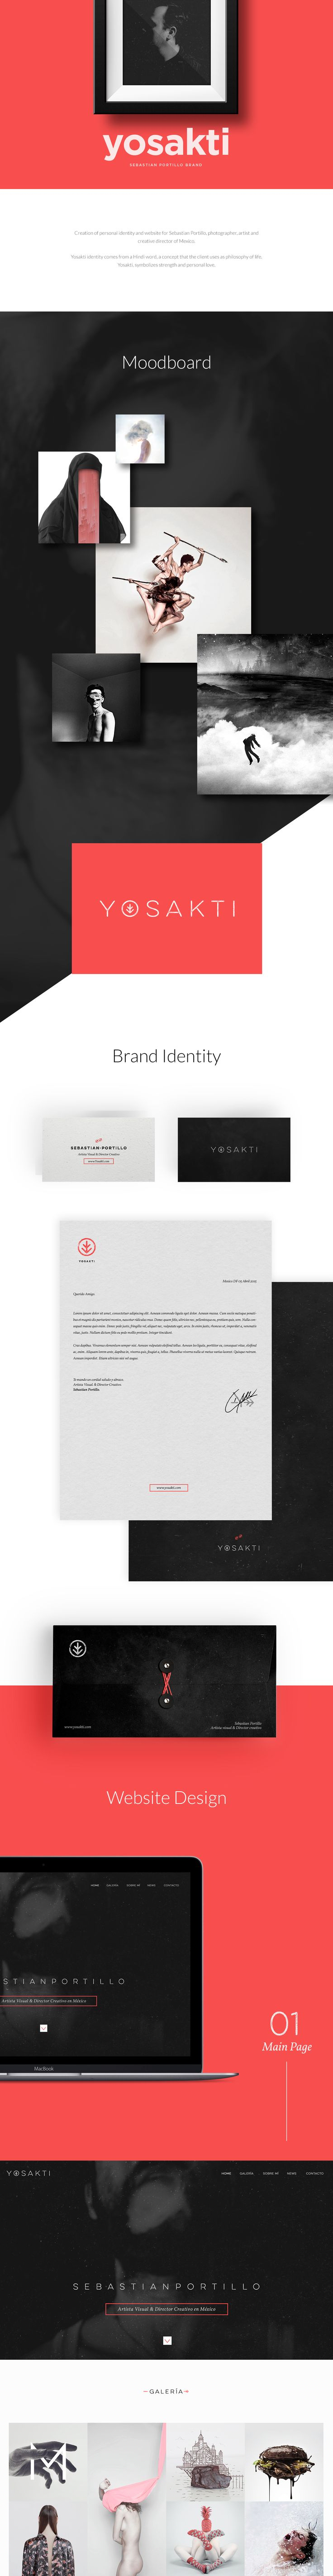 Yosakti on Behance